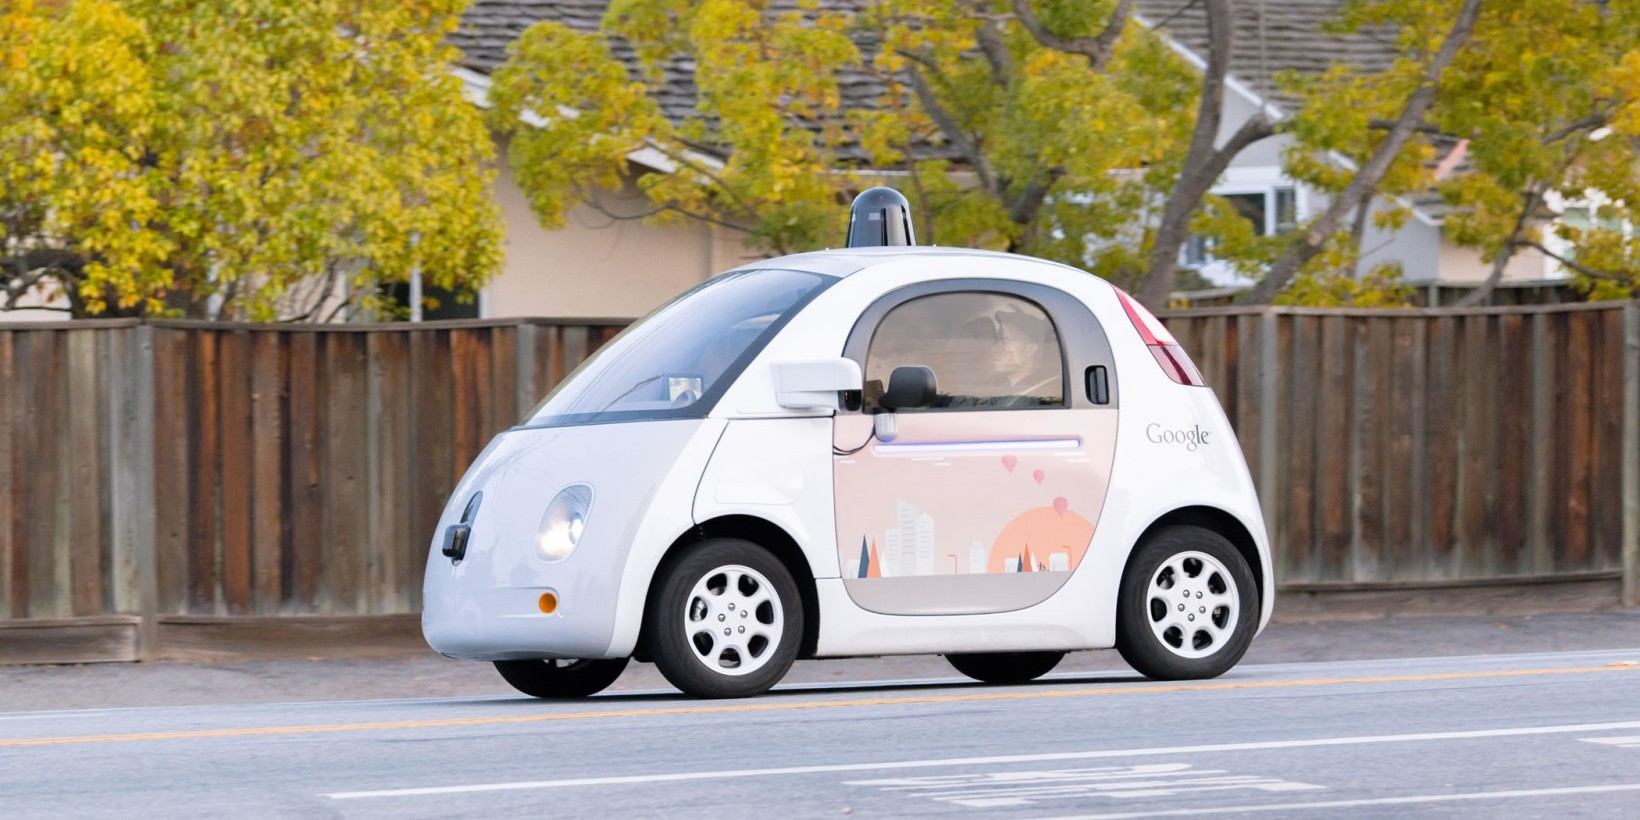 Google S Self Driving Car Has Learned How To Honk So Stay